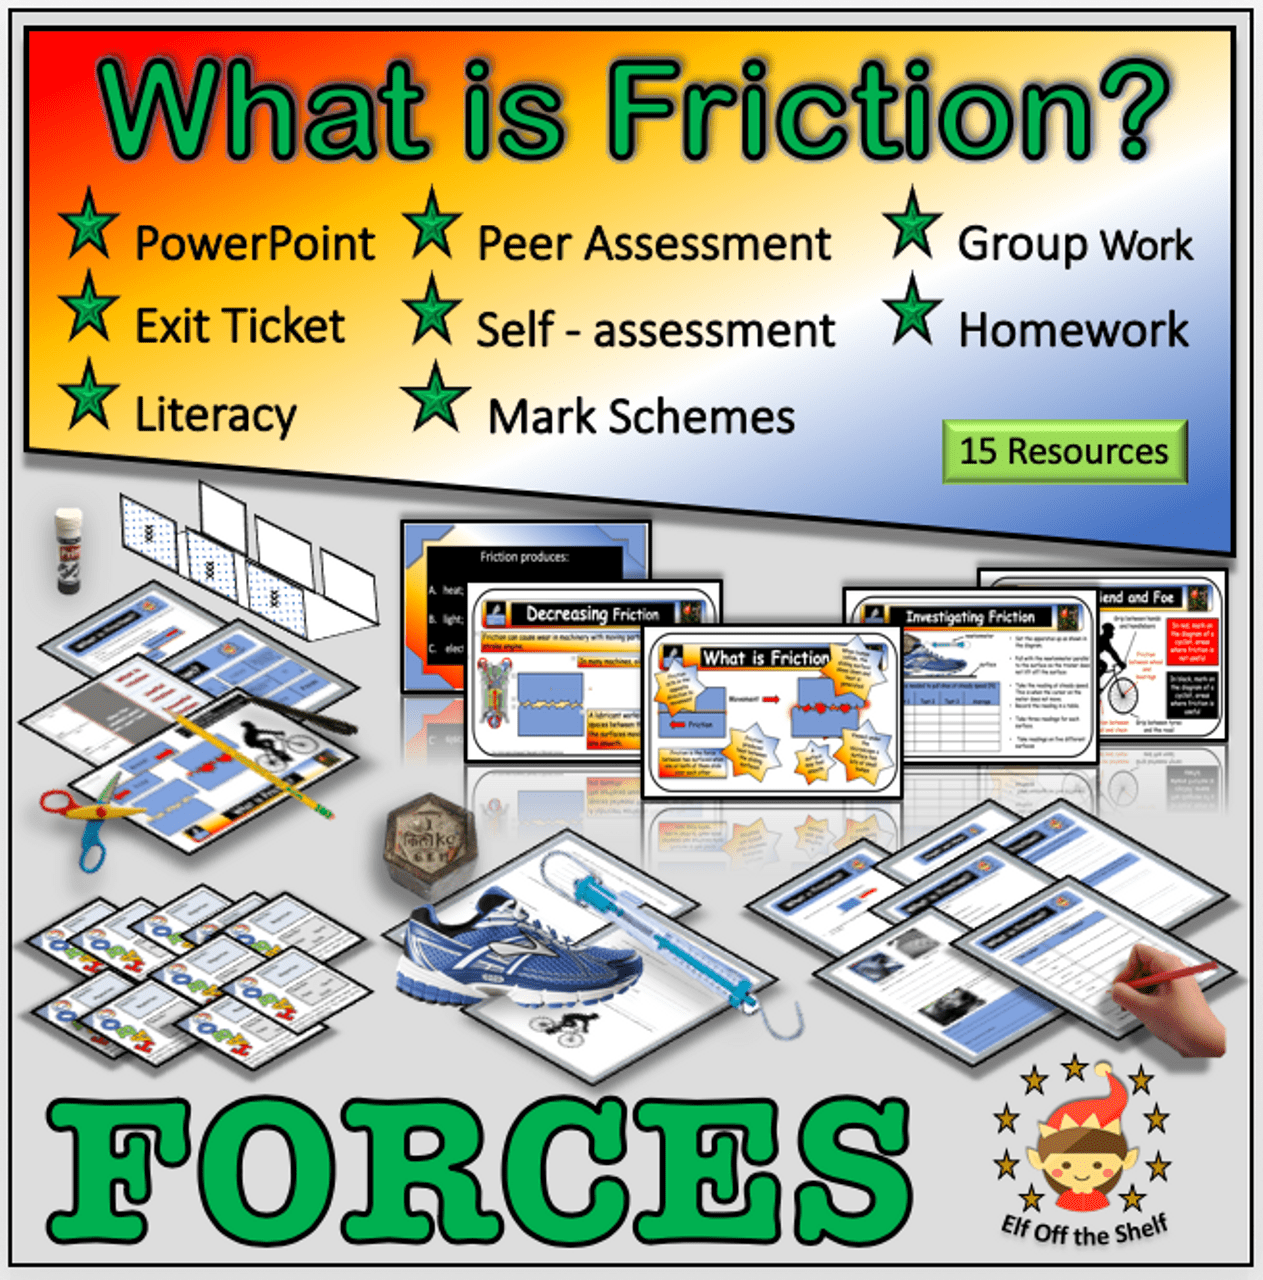 medium resolution of Forces - What is friction? - Middle School Science - Amped Up Learning